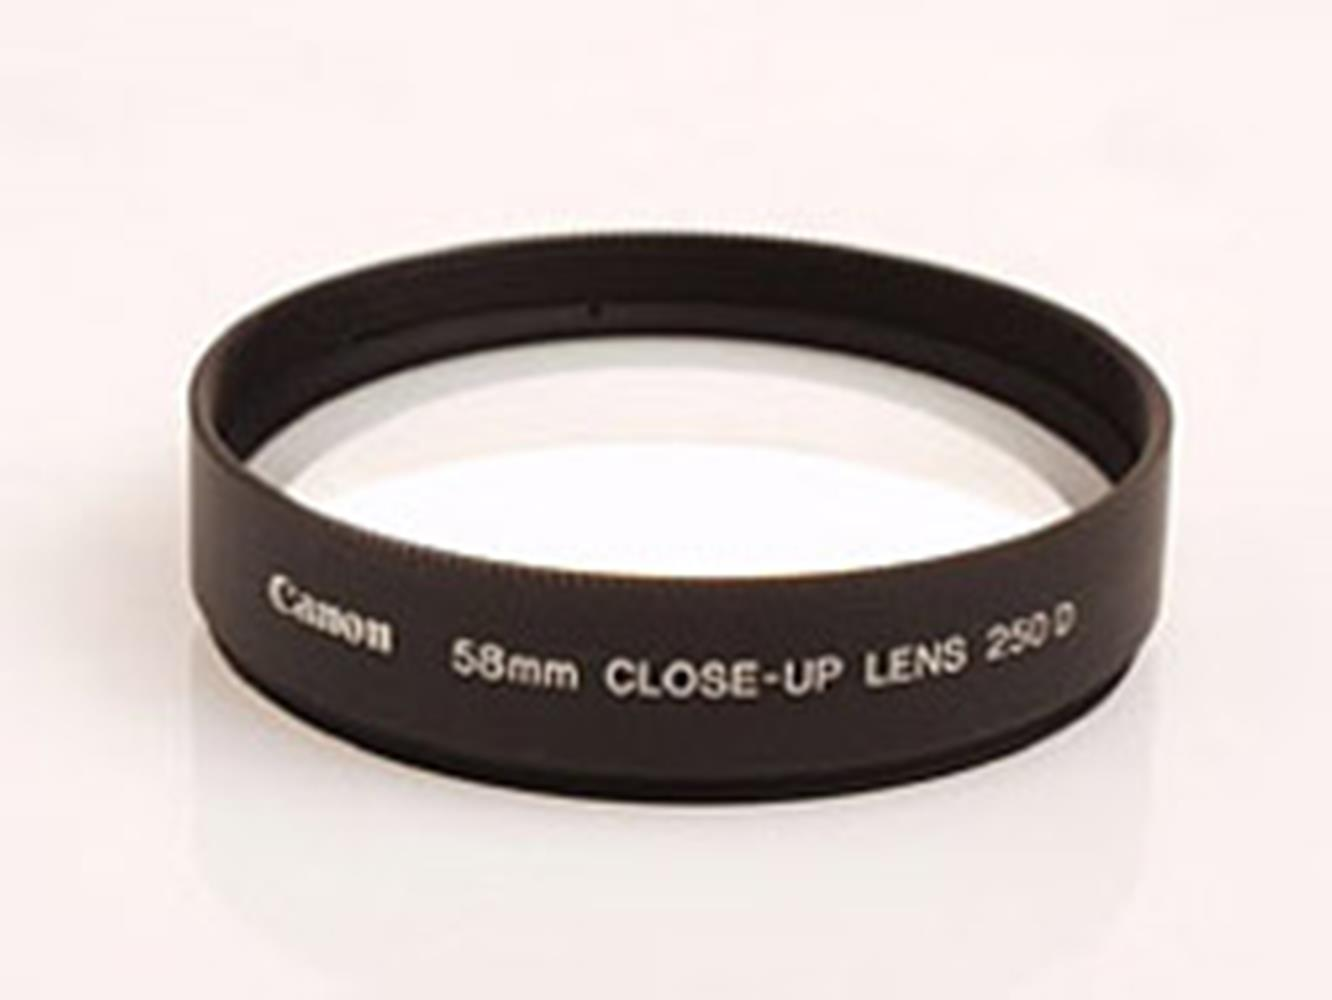 CANON 58MM CLOSE UP LENS 250D